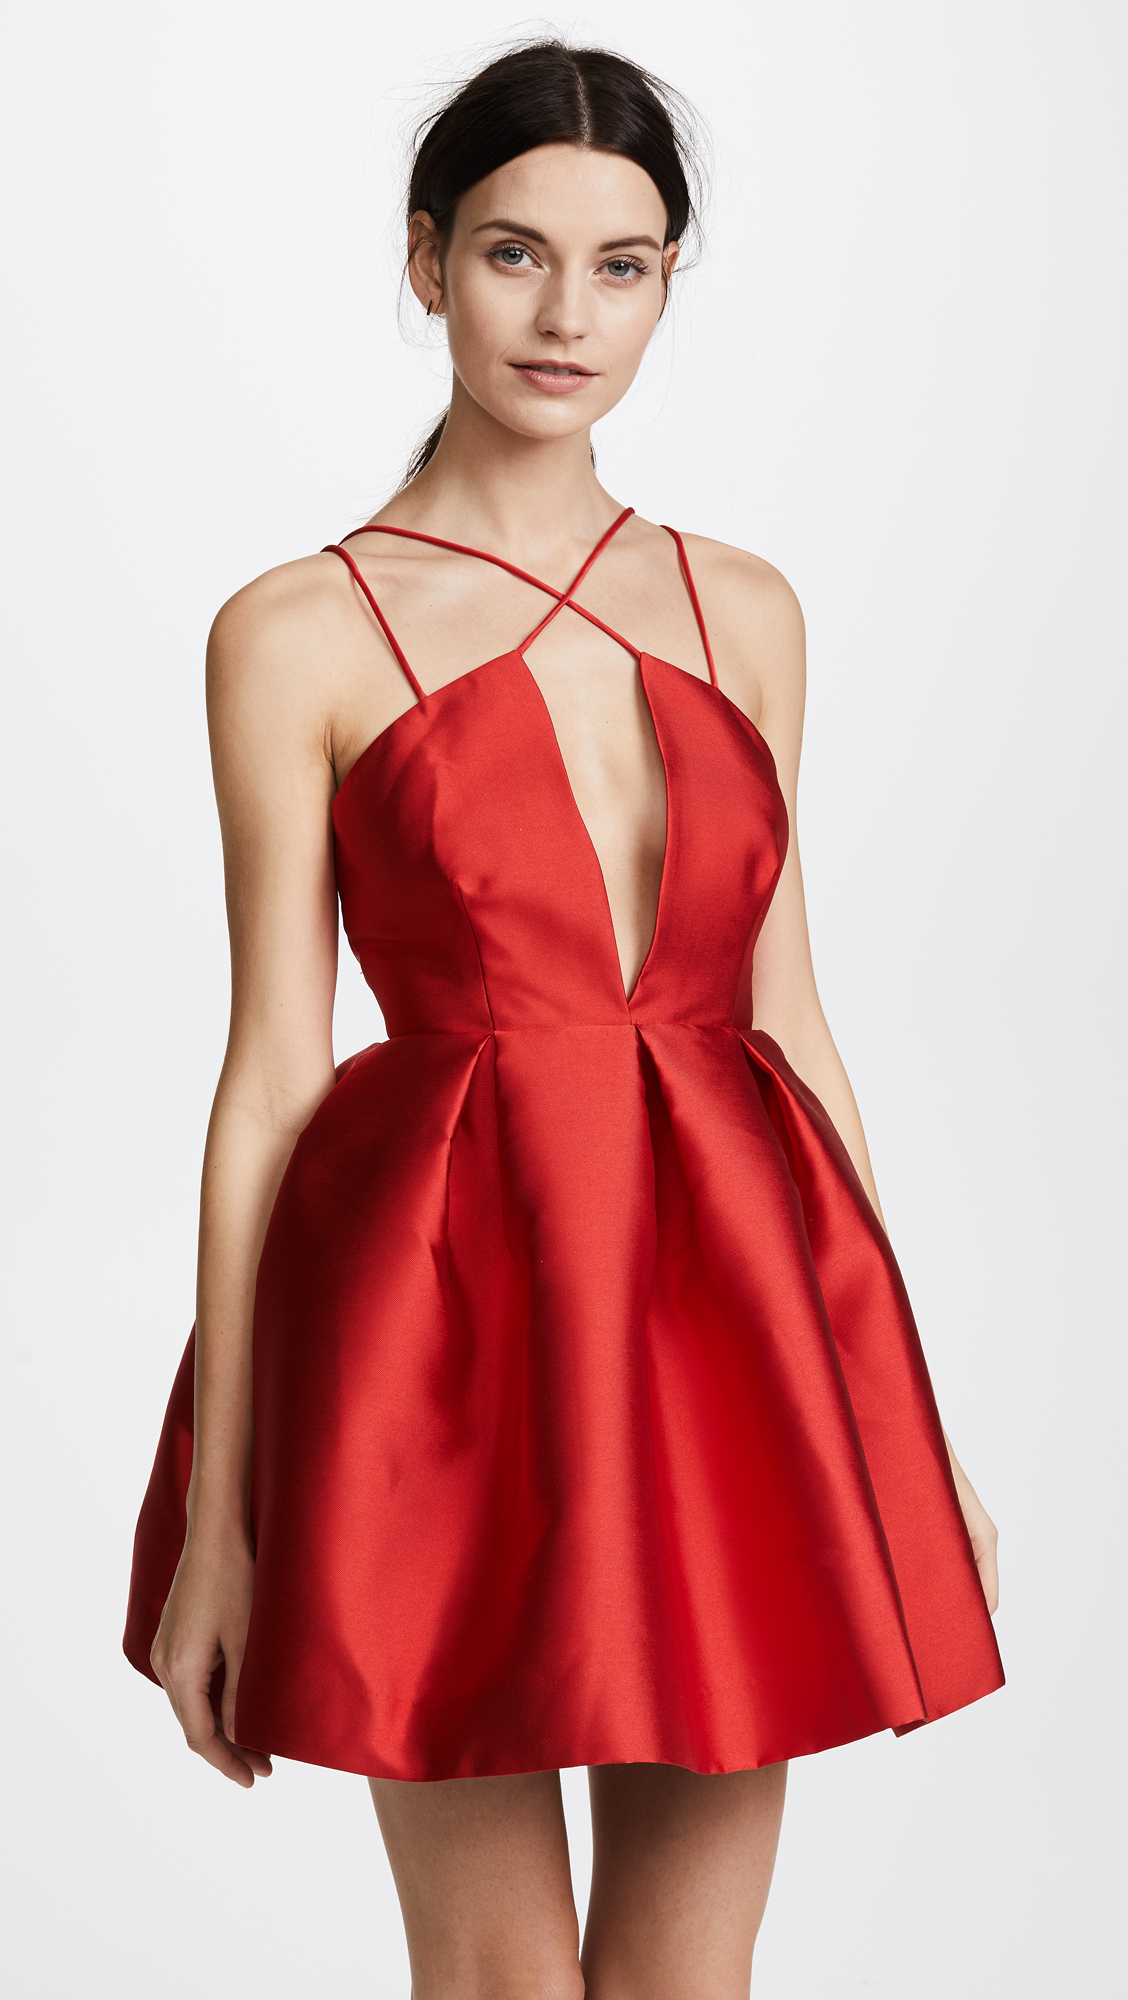 Loving this dress with a plunging neckline